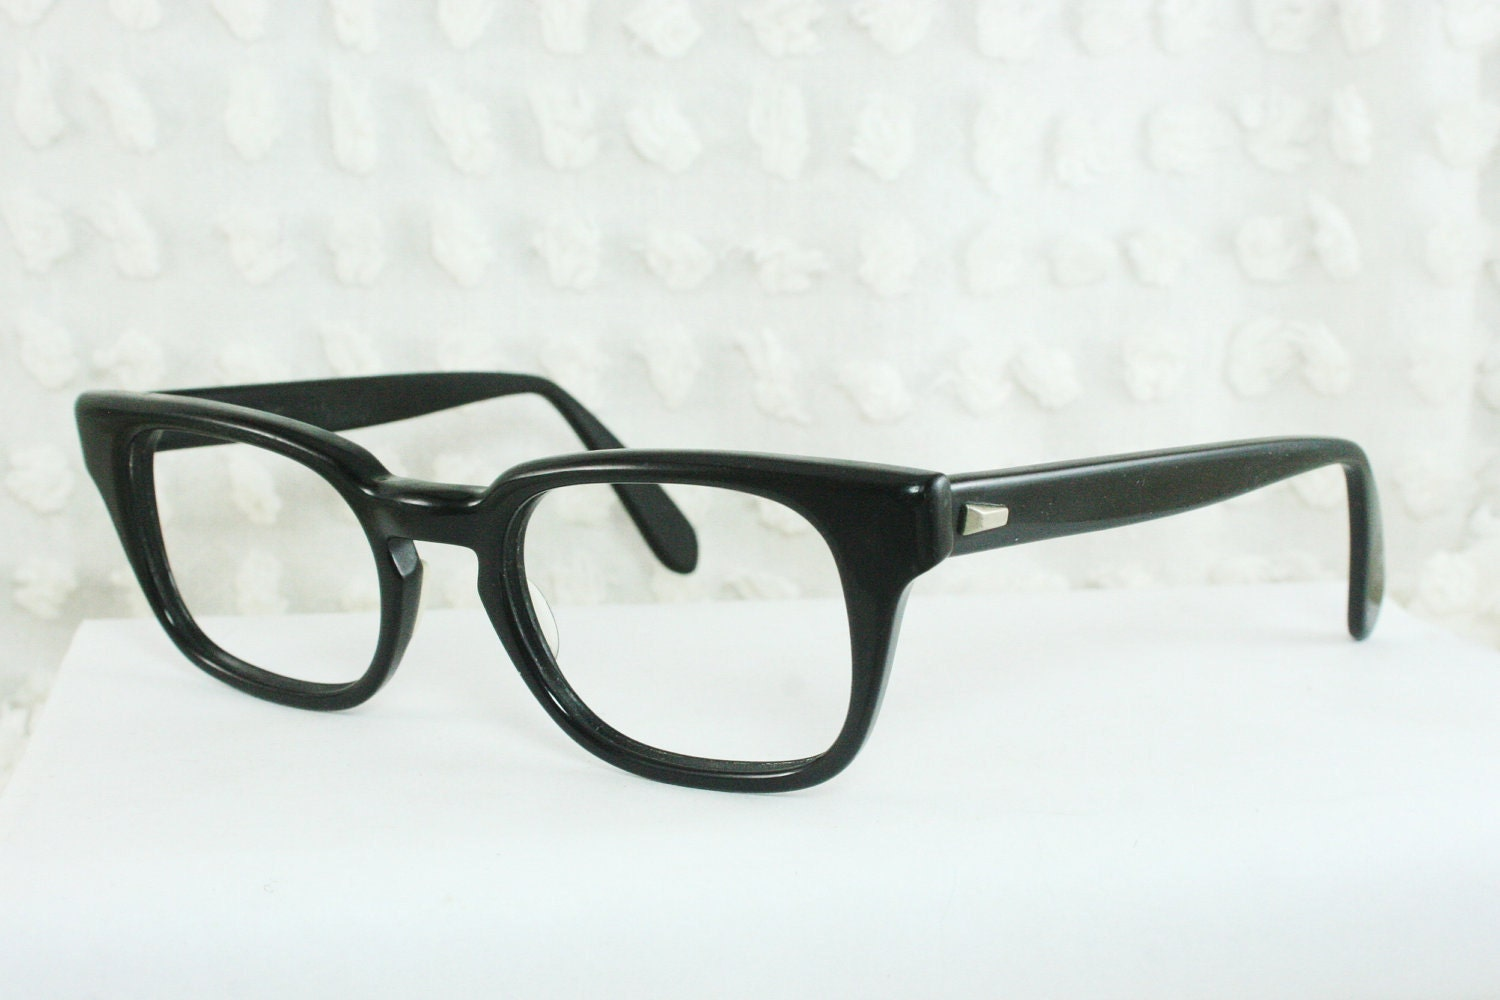 Thick Frame Glasses For Round Face : 1960s Mens Eyeglasses Horn Rim Thick Nerd Frame by DIAeyewear